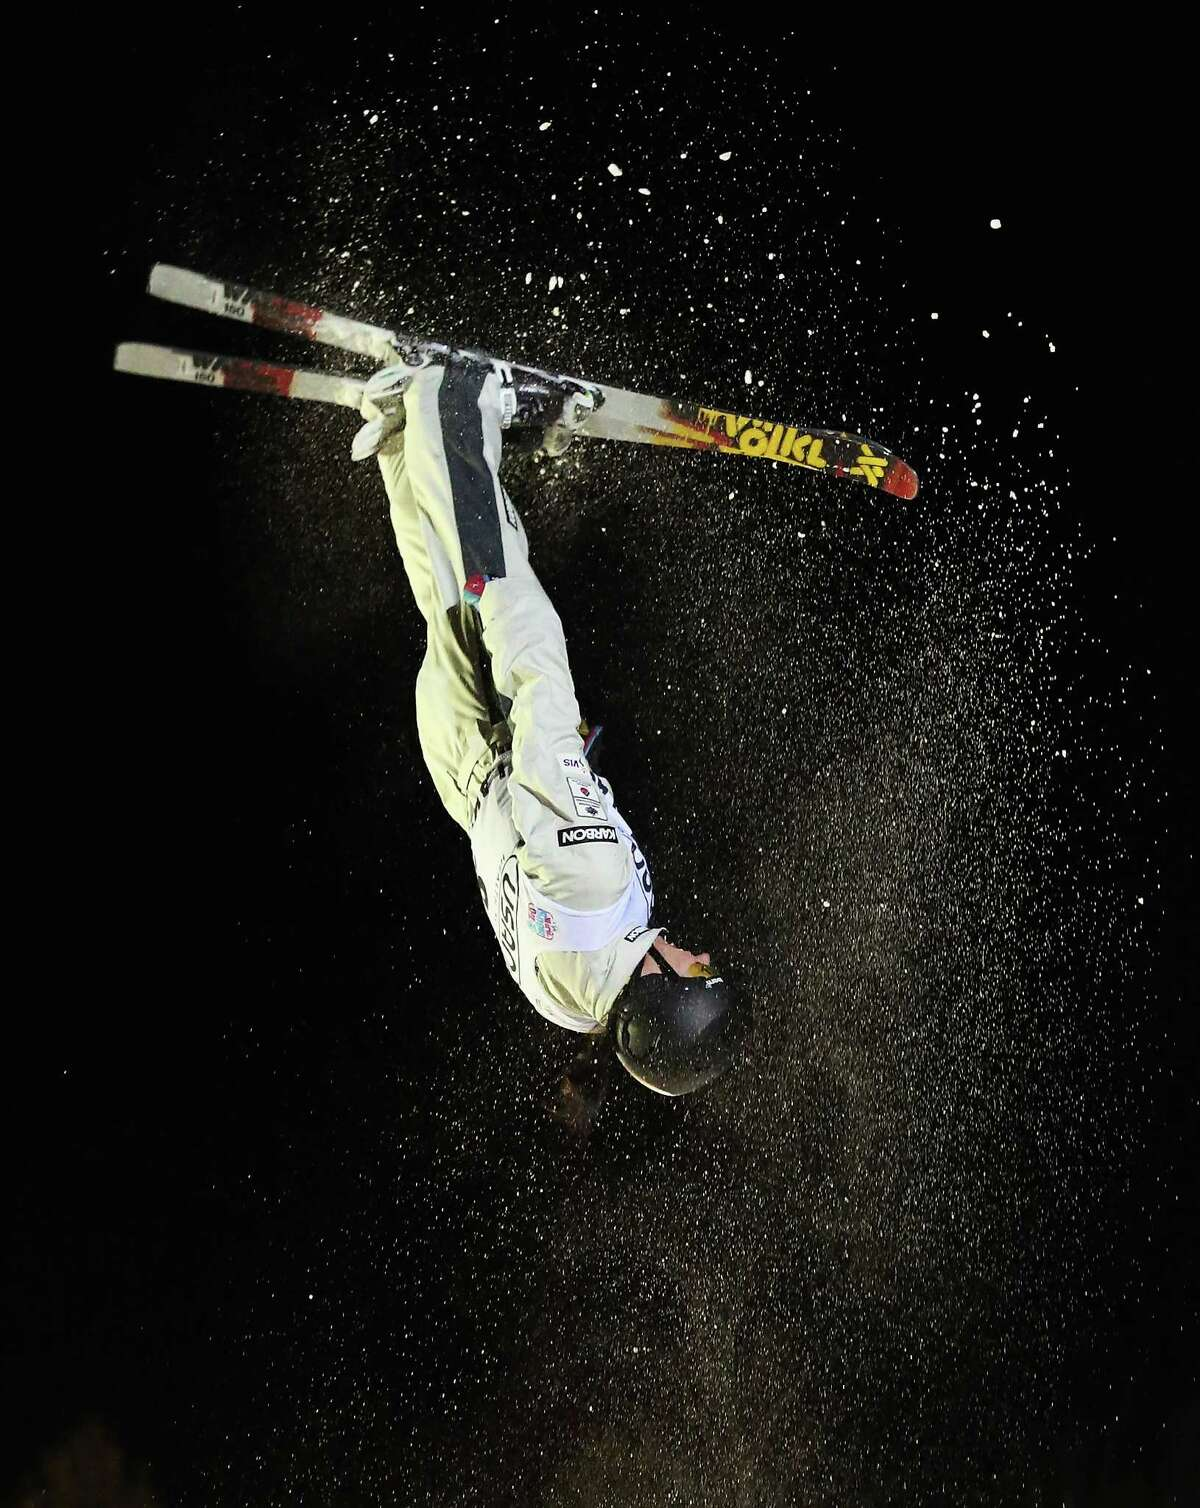 LAKE PLACID, NY - JANUARY 19: Laura Peel #8 of Australia jumps in the USANA Freestyle World Cup aerial competition at the Lake Placid Olympic Jumping Complex on January 19, 2013 in Lake Placid, New York.